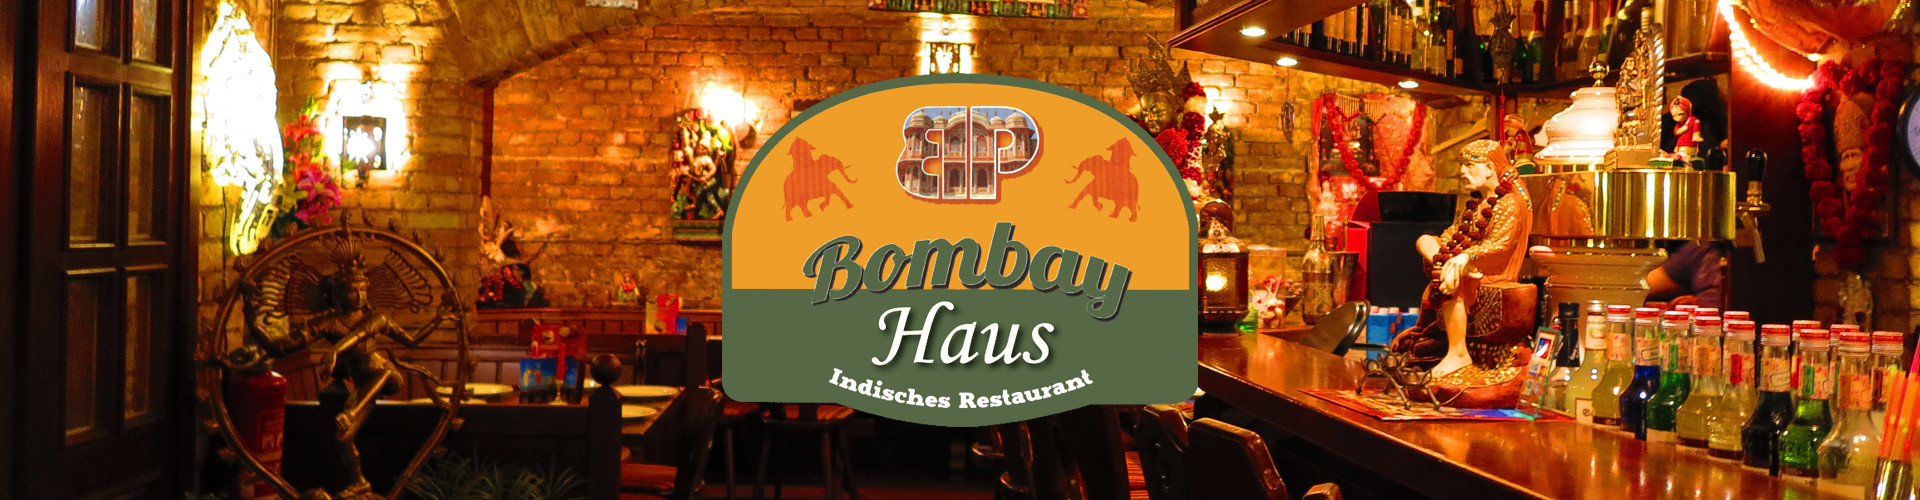 bombay haus rostock indisches spezialit ten restaurant. Black Bedroom Furniture Sets. Home Design Ideas